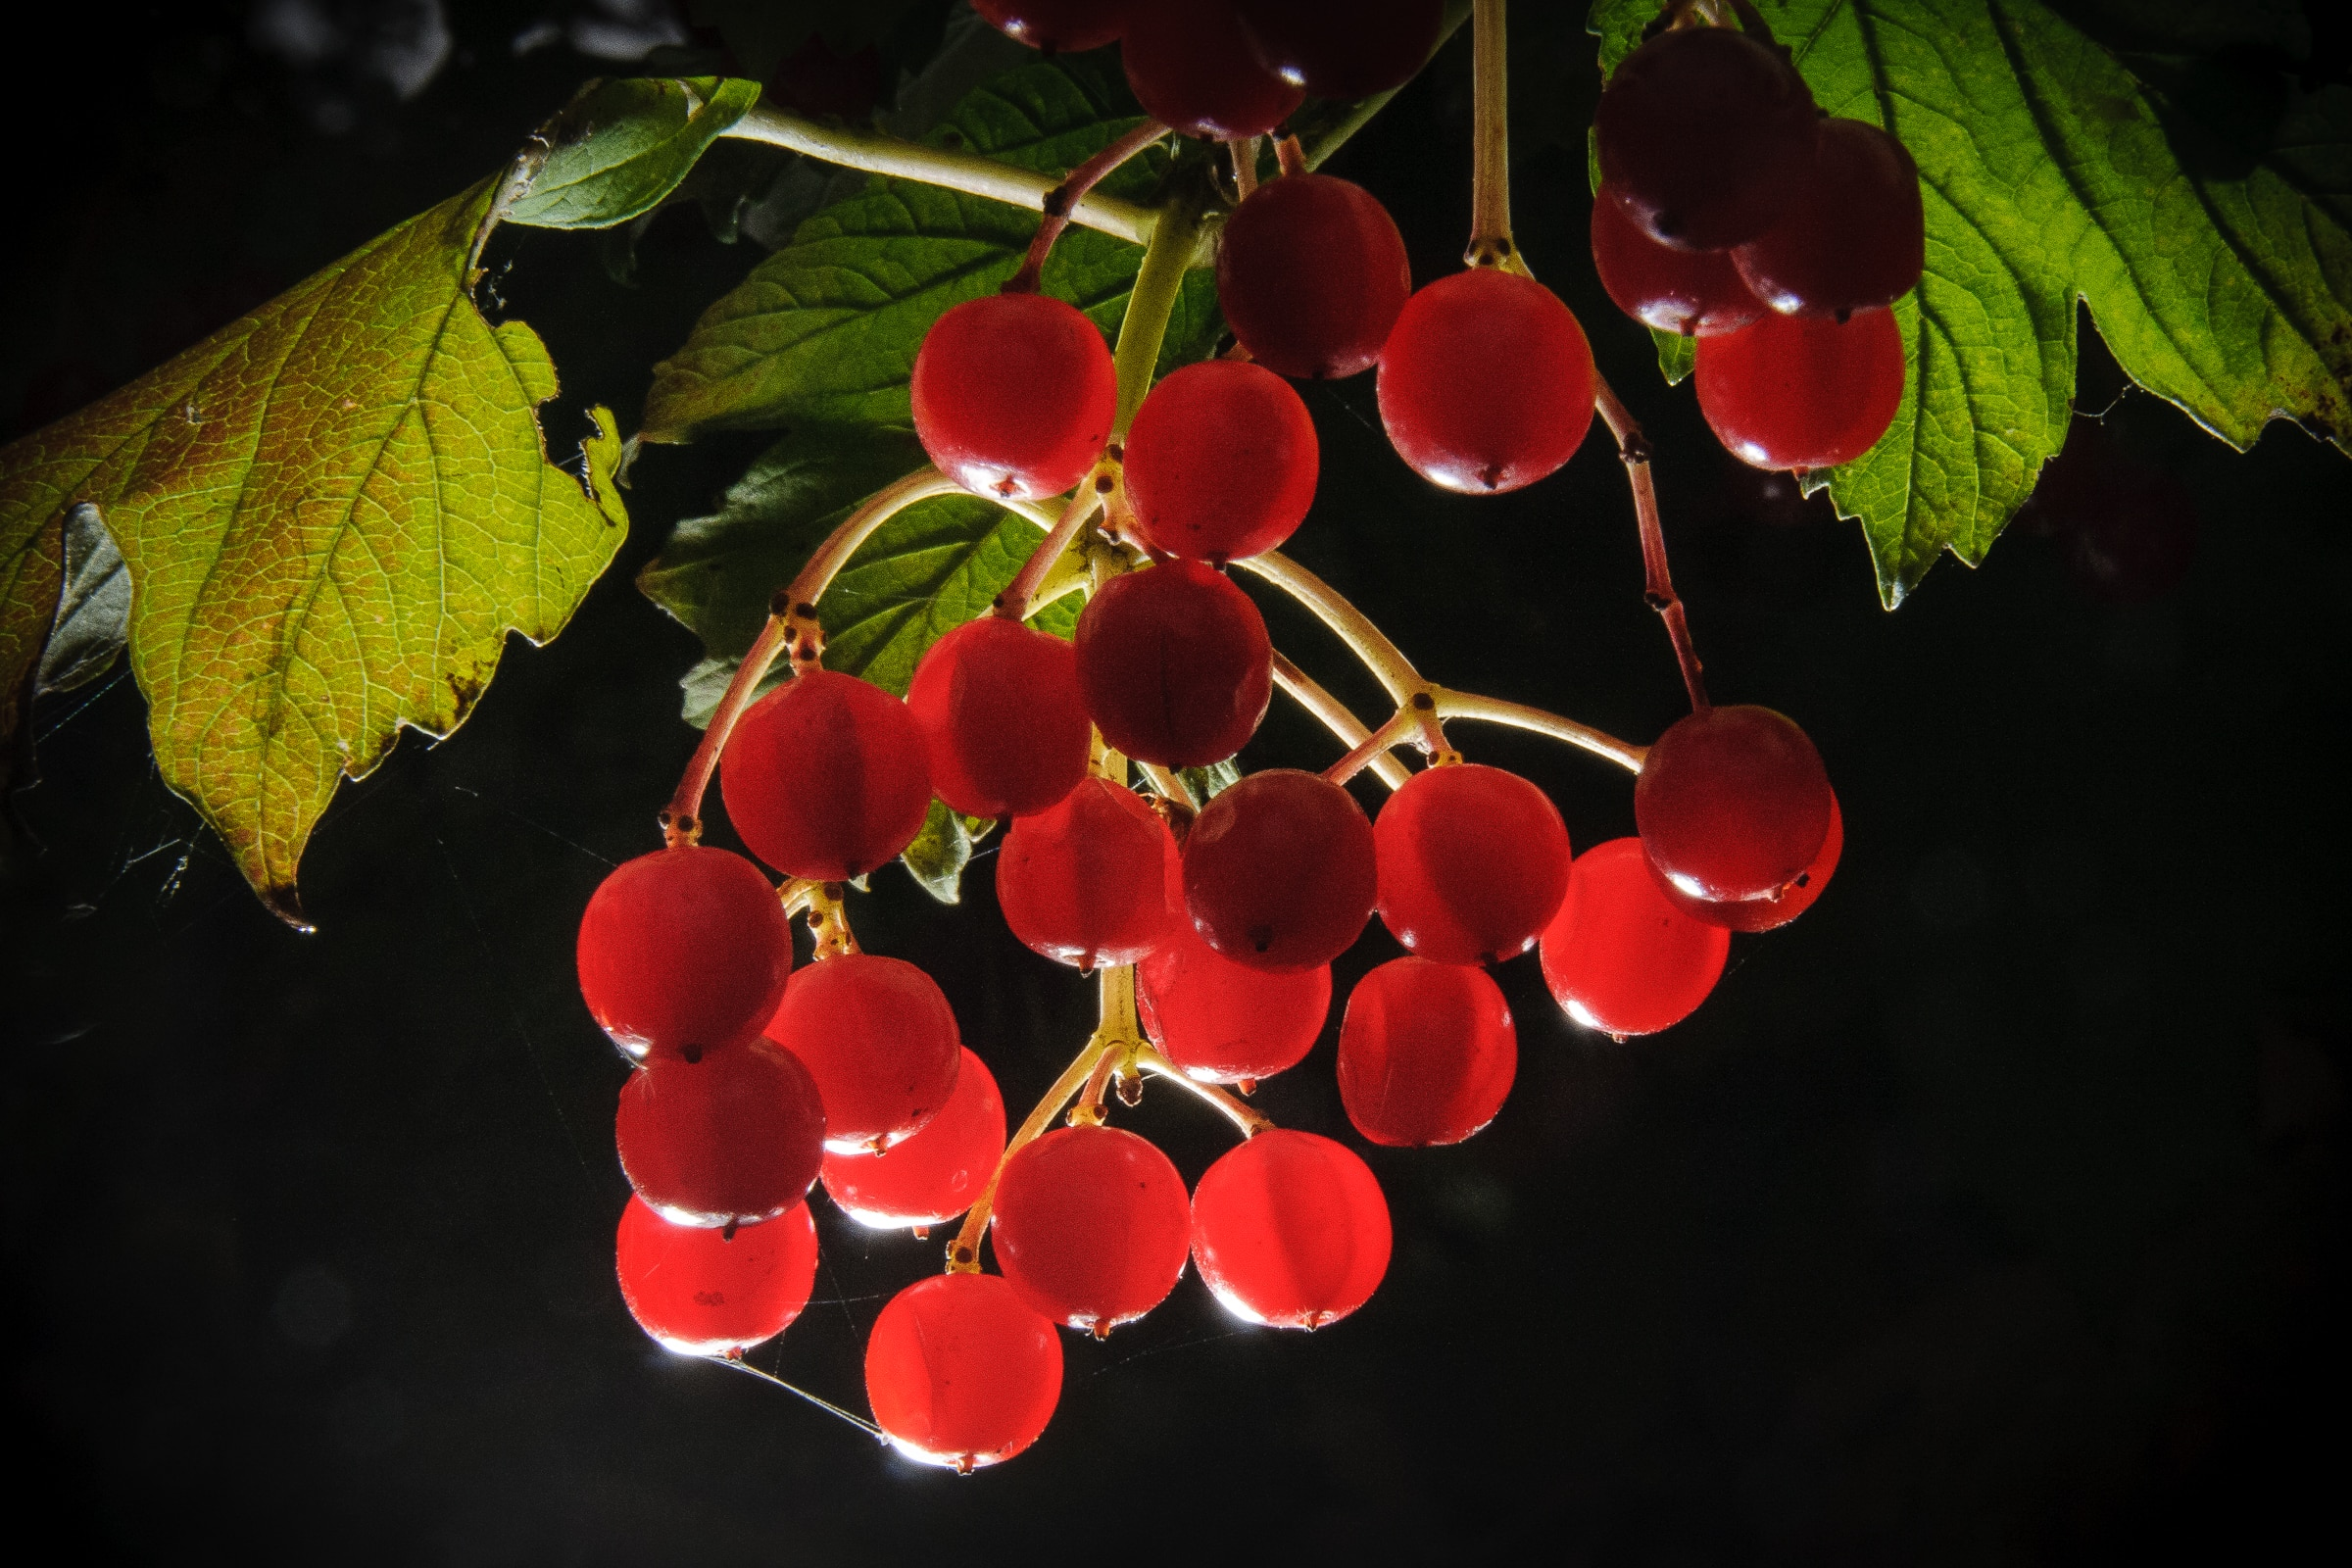 The redcurrant, or red currant is a member of the genus Ribes in the gooseberry family. This specimen grows in Johnson Lake State Recreational Area, Nebraska.